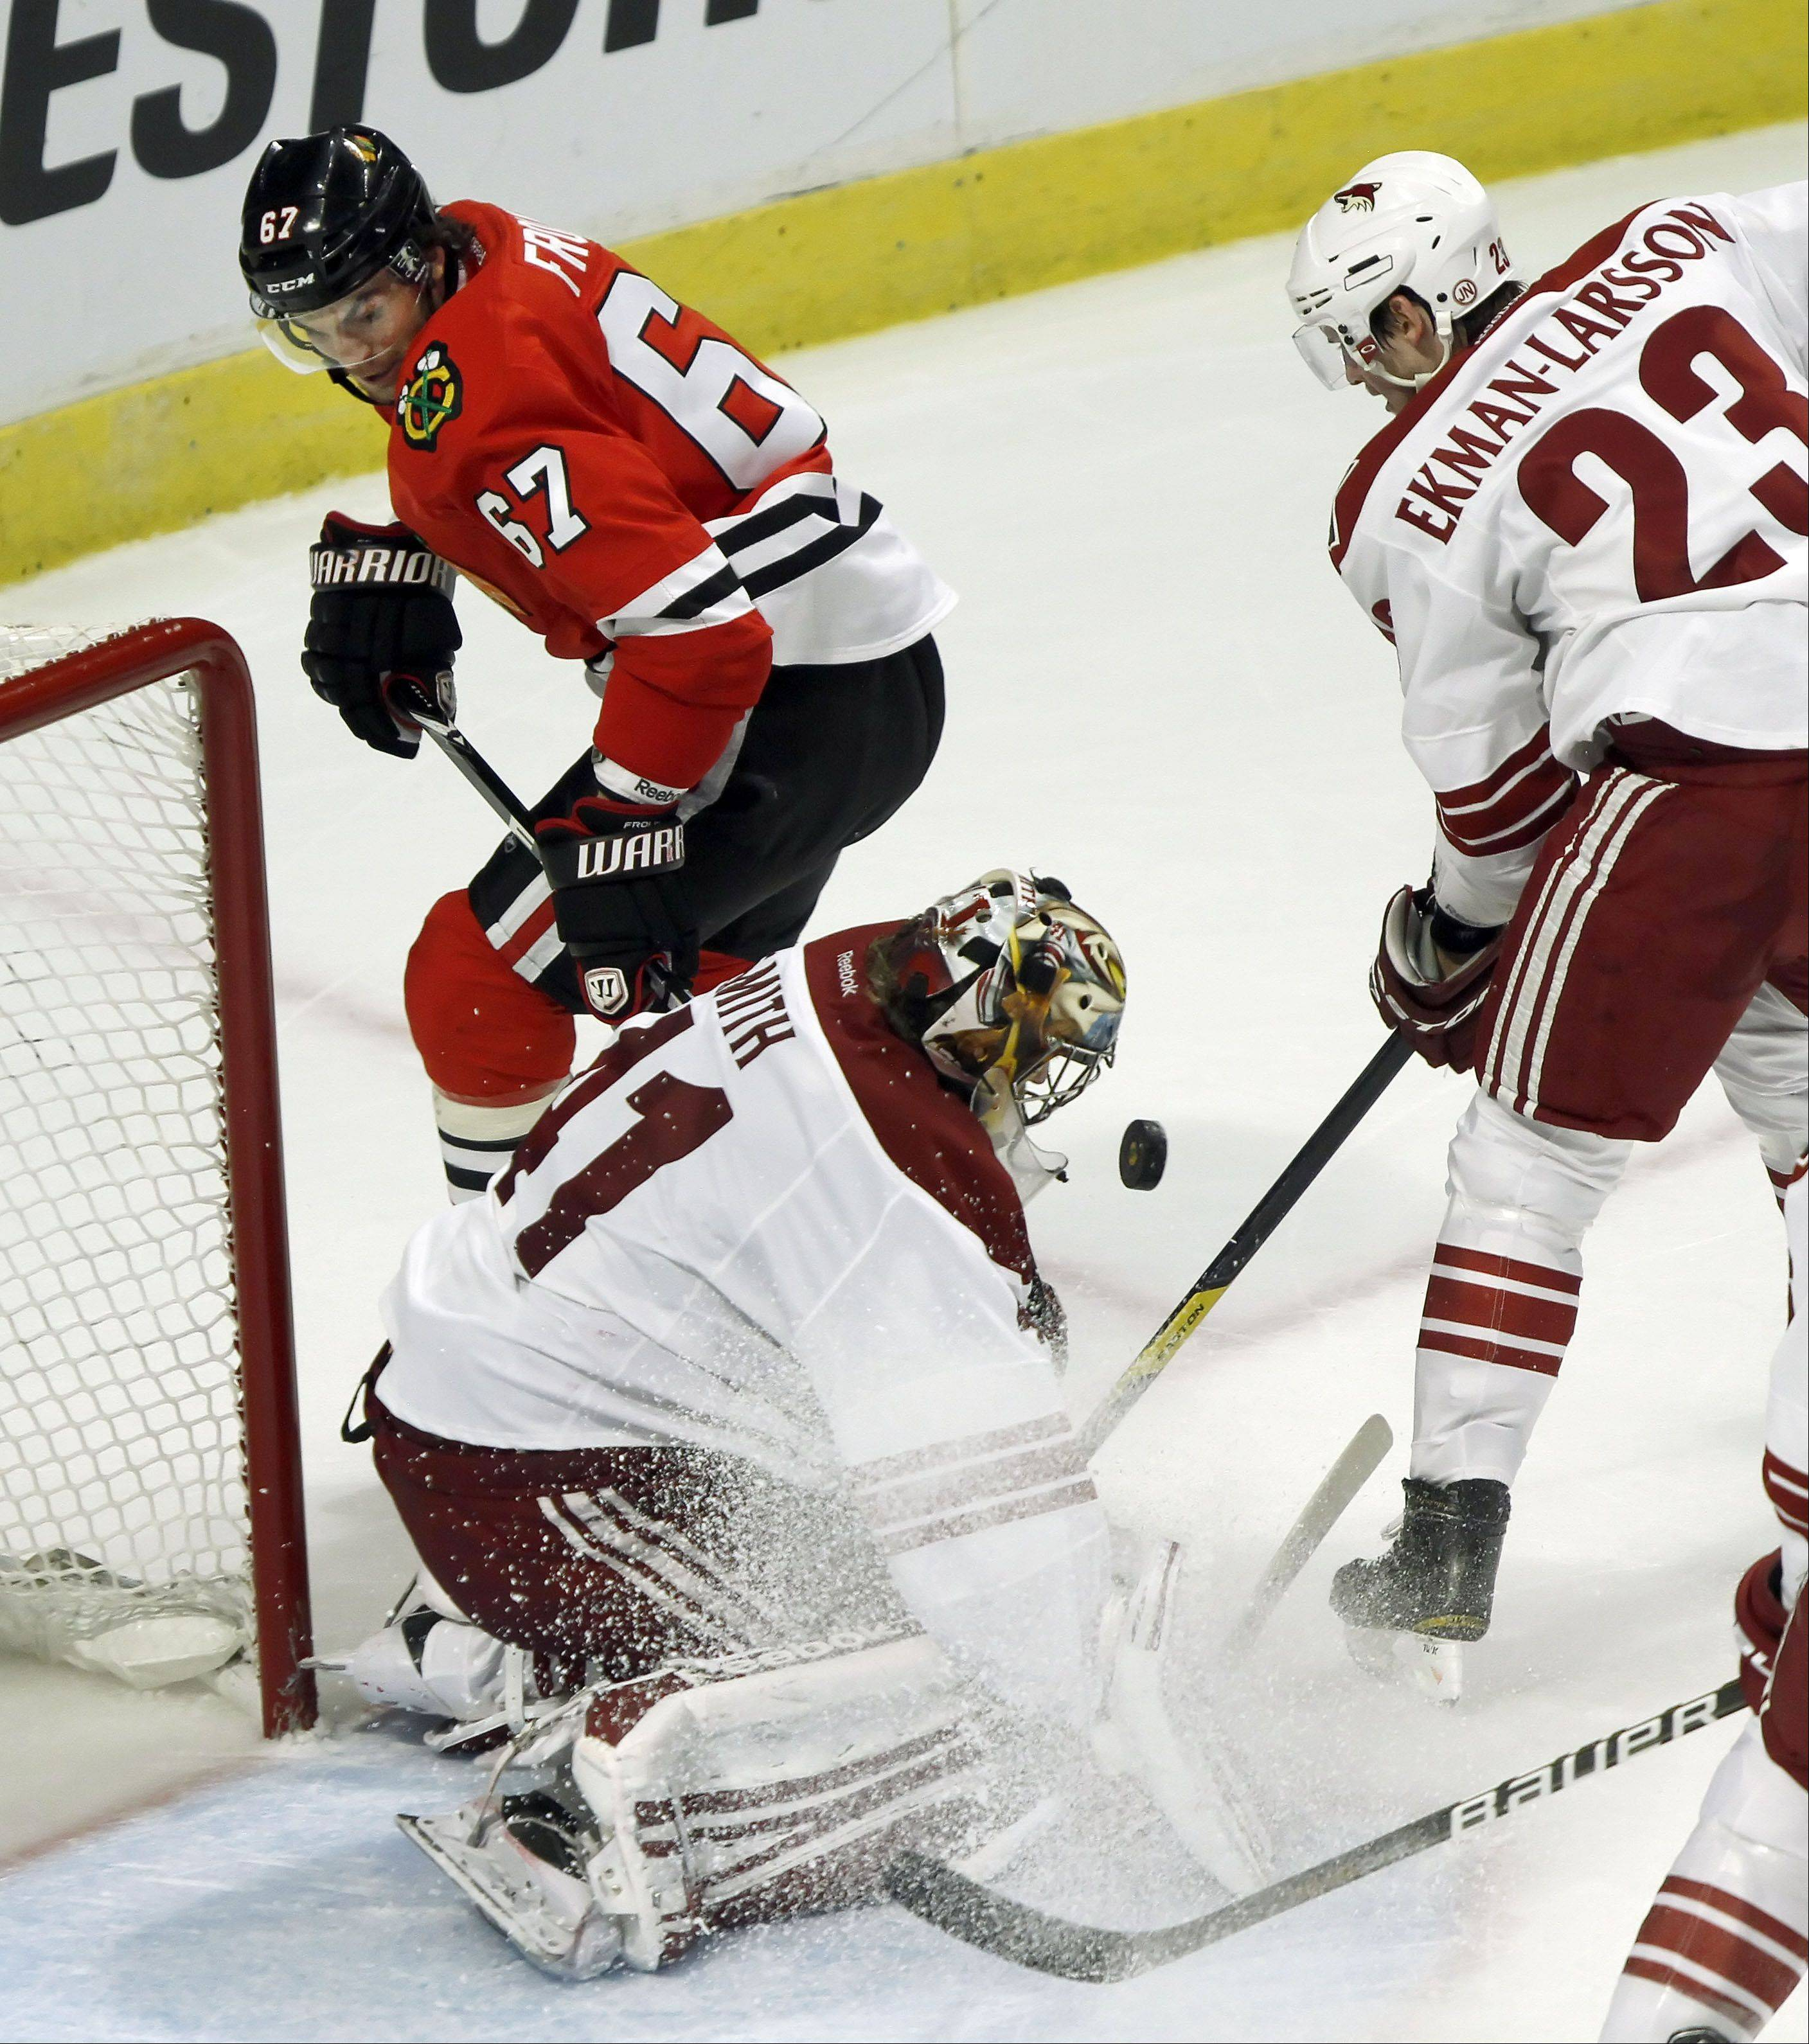 Chicago Blackhawks' right wing Michael Frolik shoots on Phoenix Coyotes' goalie Mike Smith.